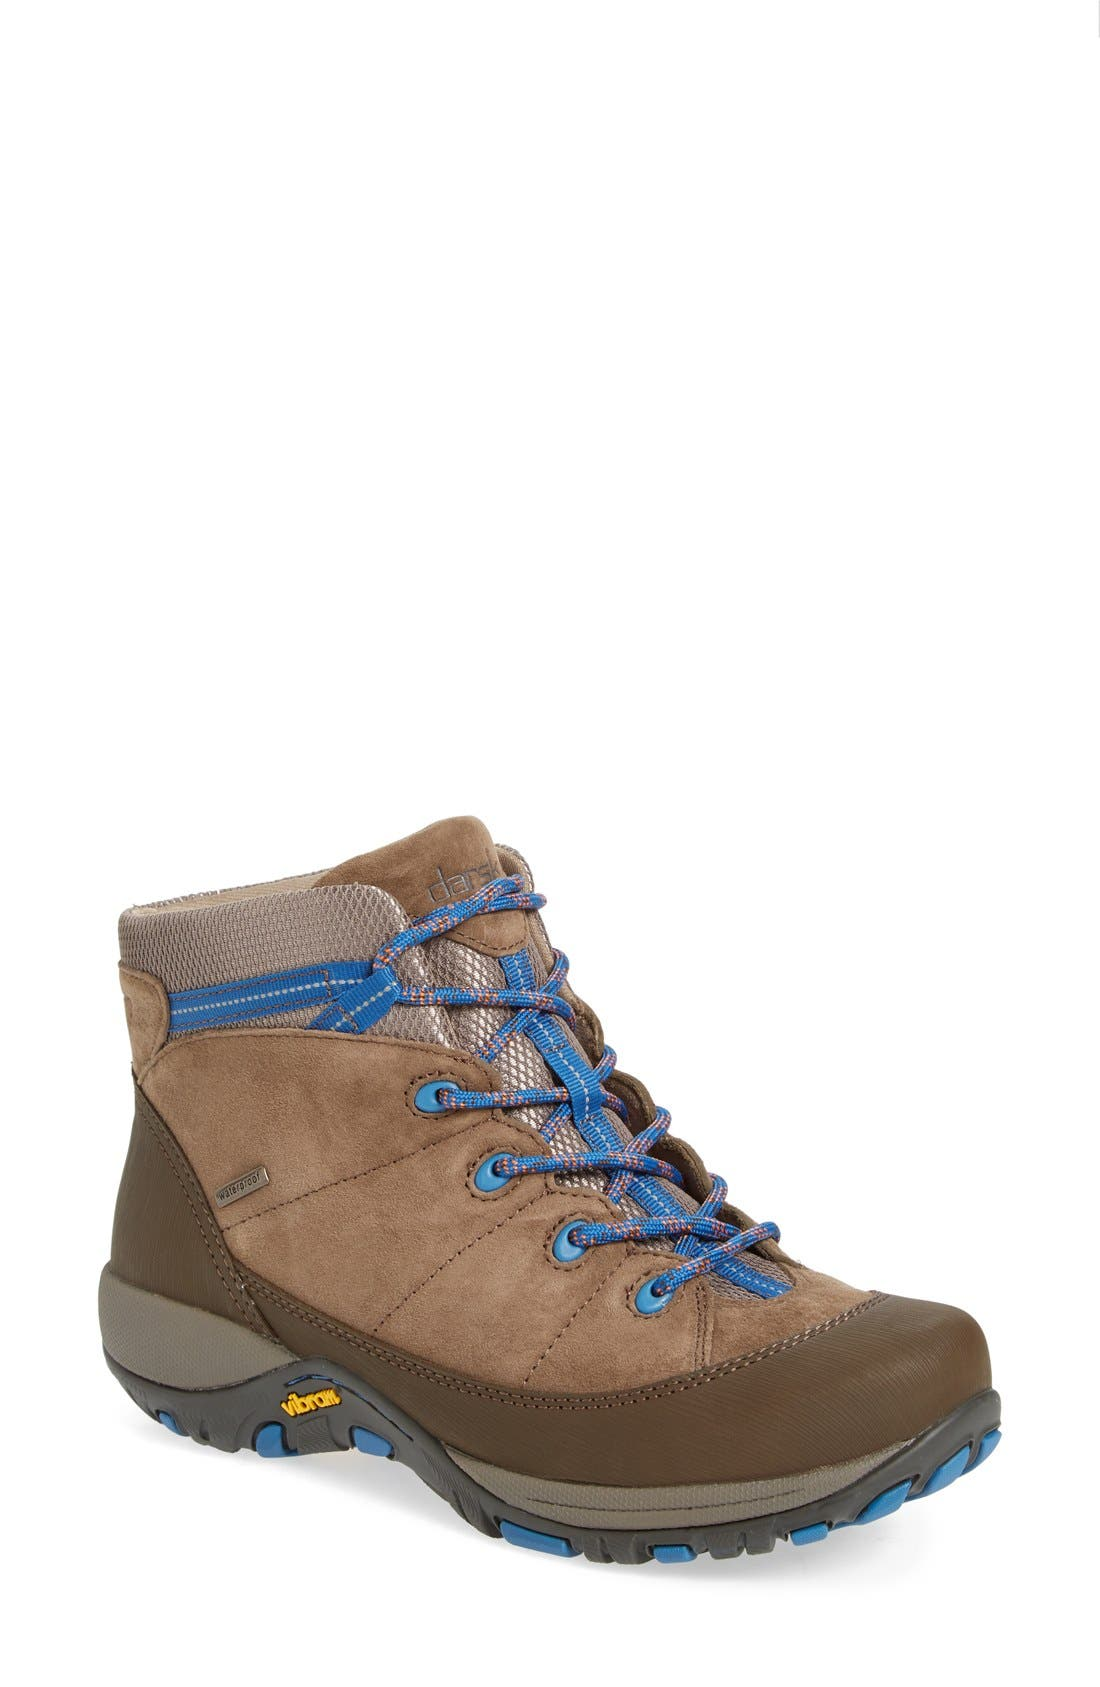 'Paulette' Waterproof Hiking Boot,                         Main,                         color, Taupe Suede